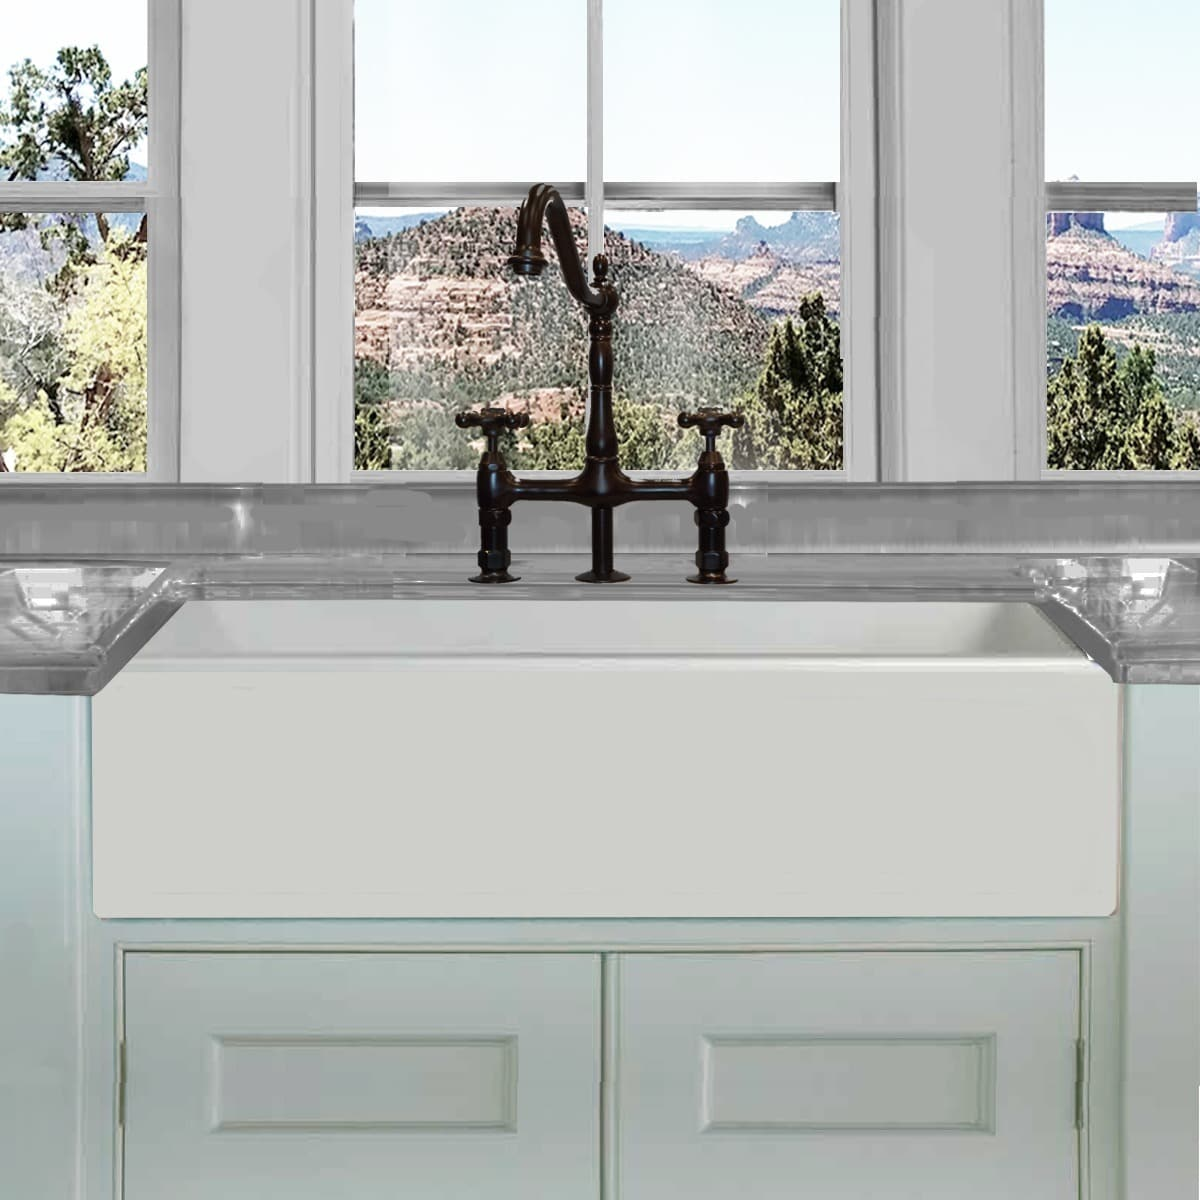 highpoint collection white 36 inch single bowl rectangle fireclay farmhouse kitchen sink highpoint collection white 36 inch single bowl rectangle fireclay      rh   walmart com